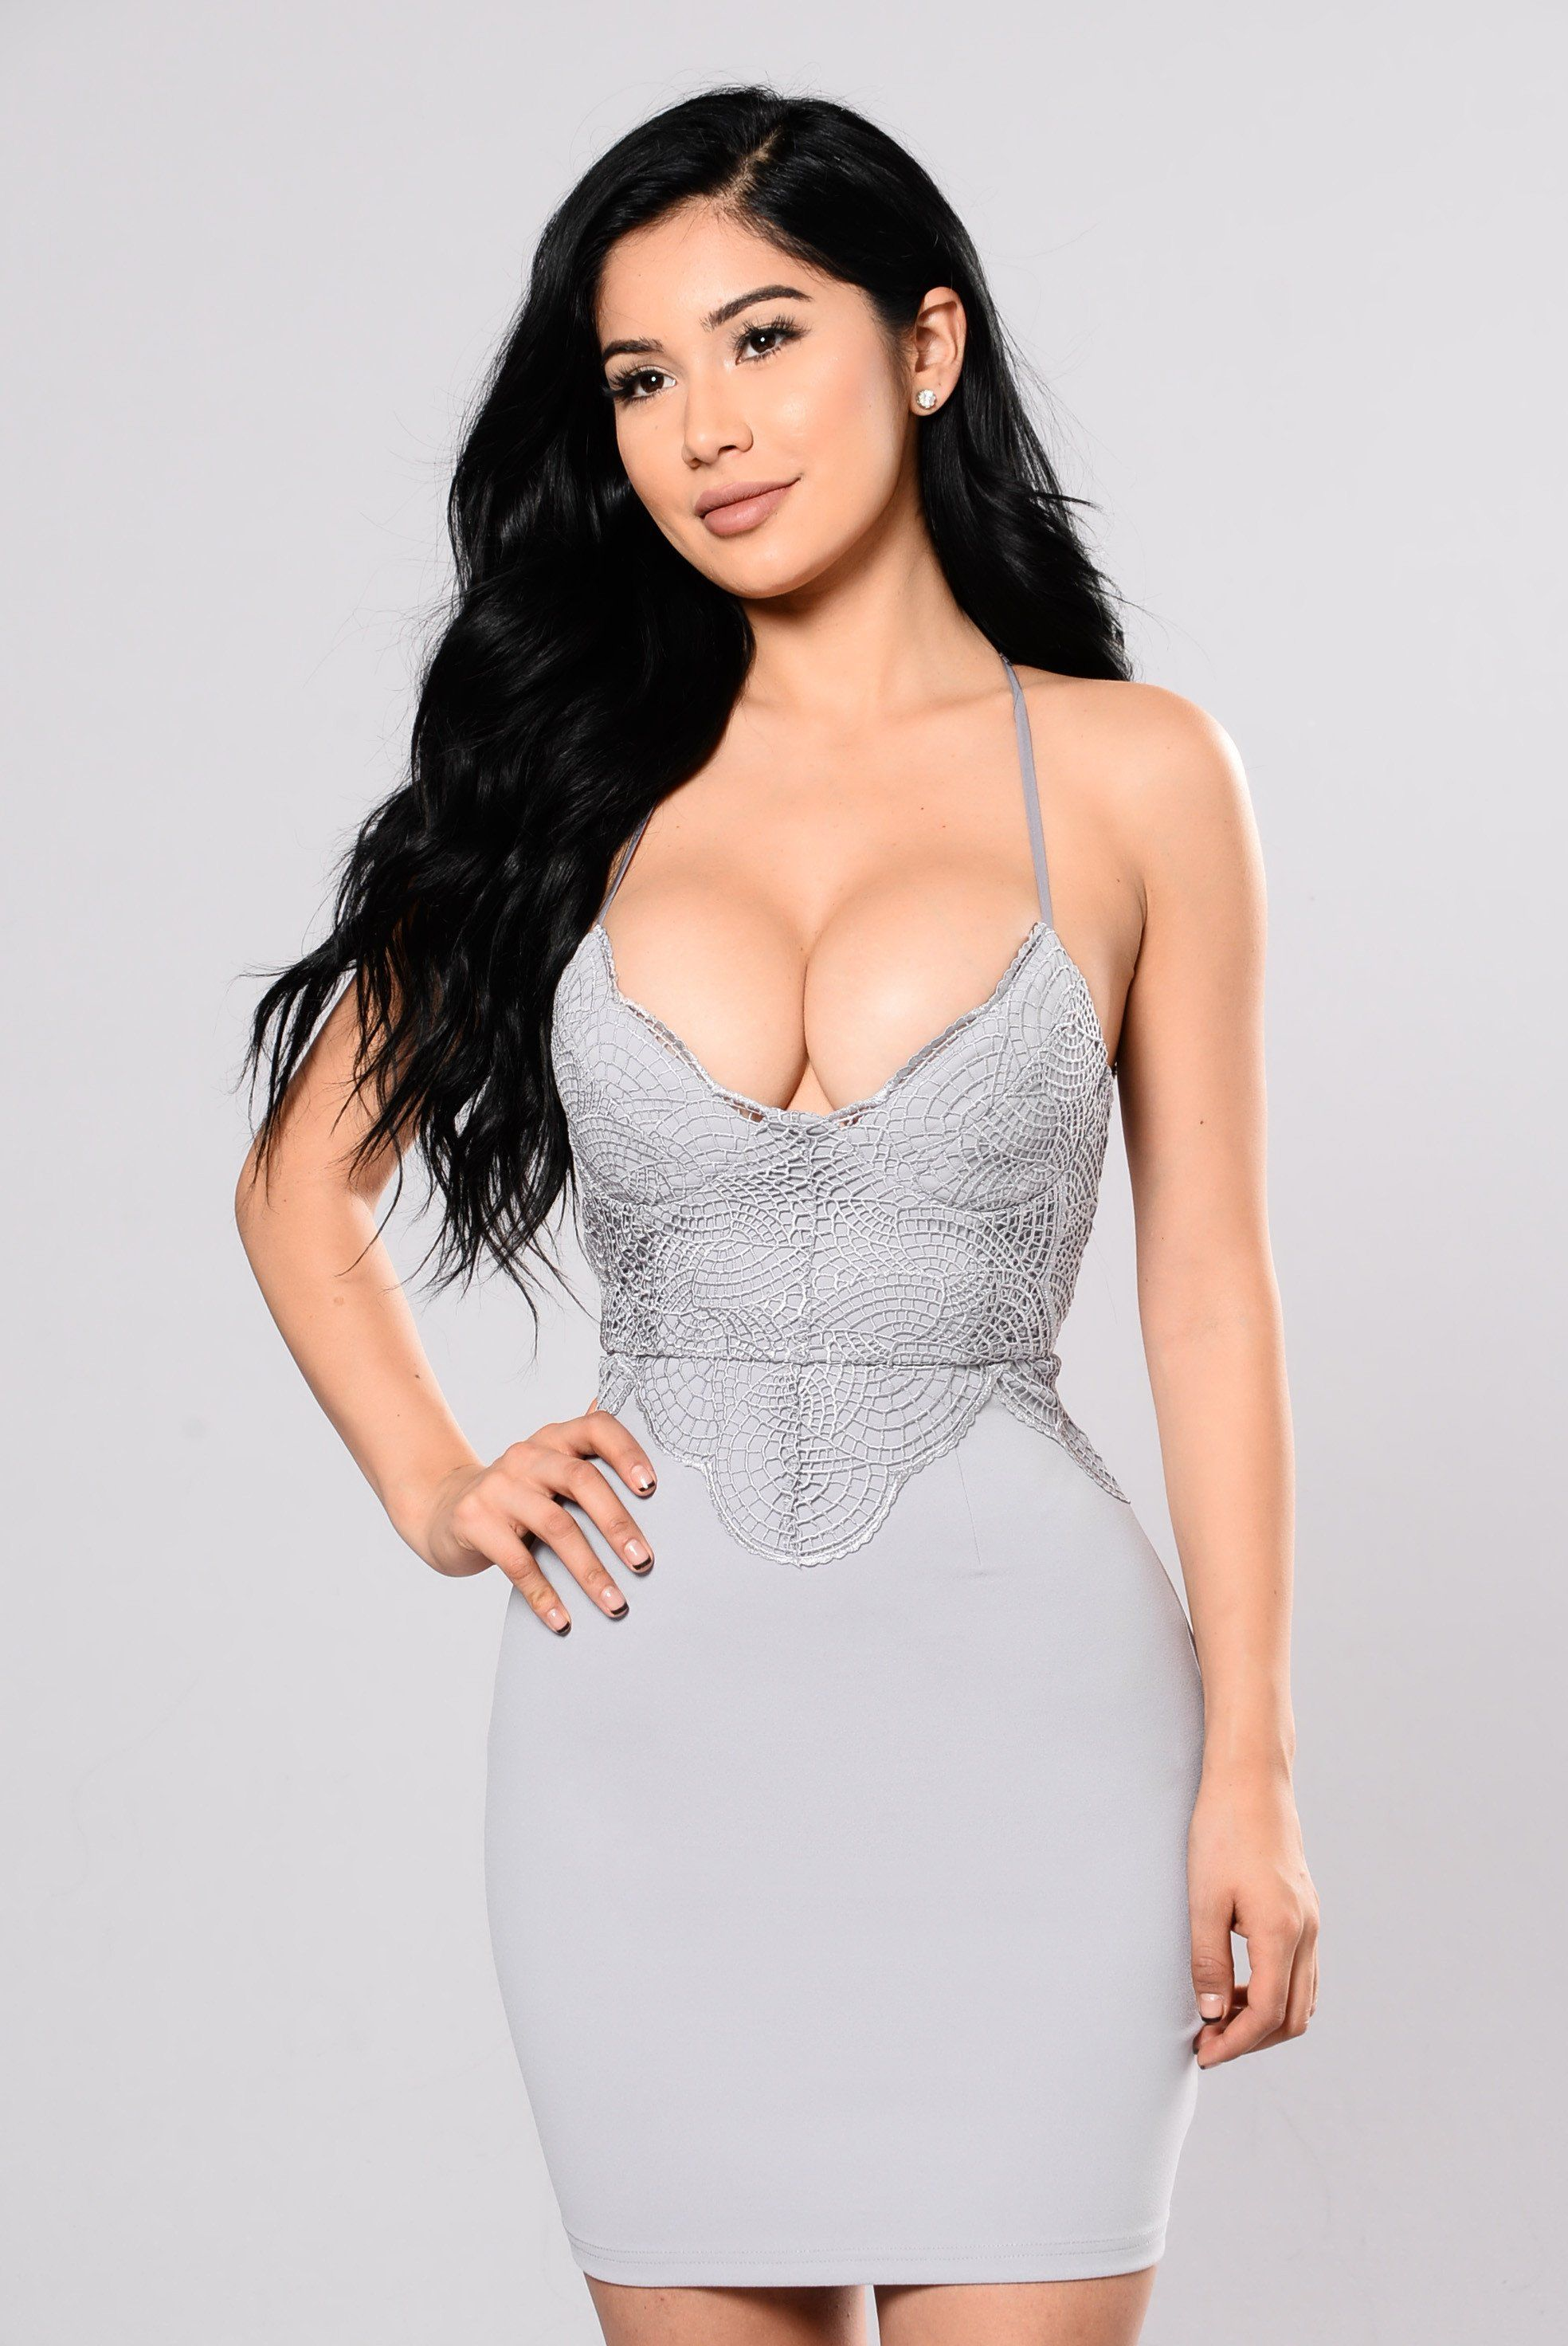 Born to be with you dress blue grey breasts pinterest dress